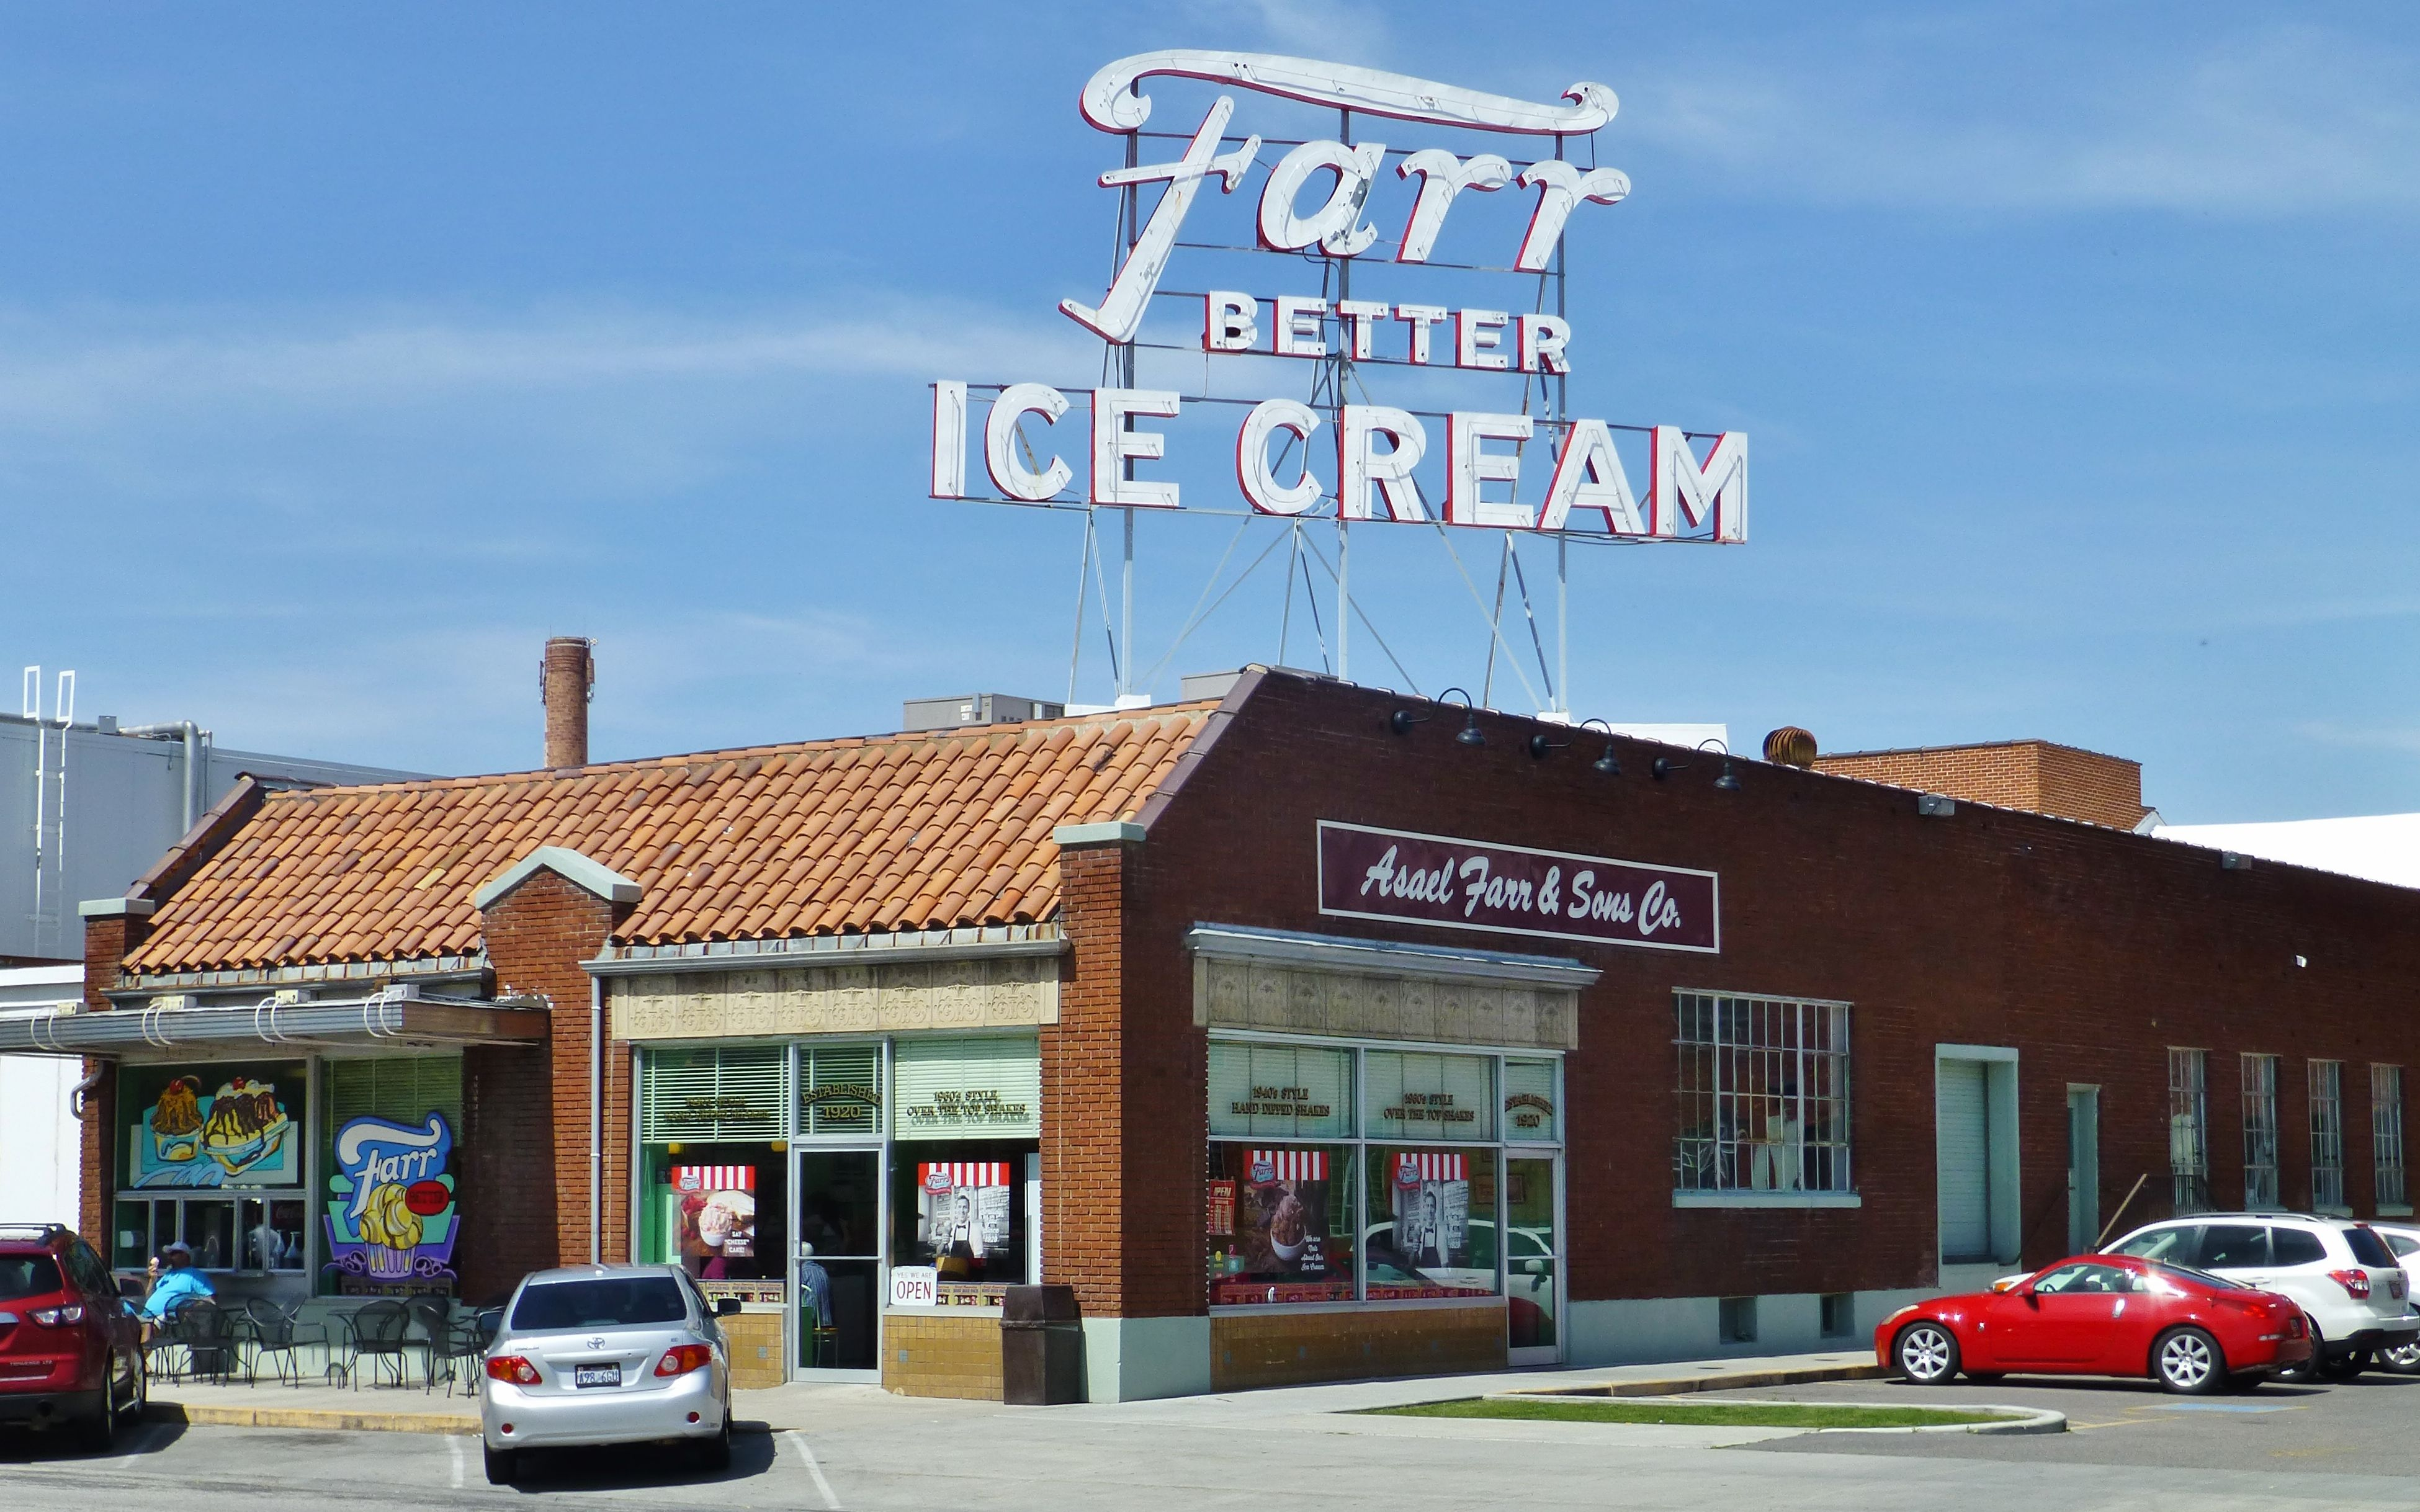 Farr Ice Cream Co In Ogden Utah Photography By David E Nelson